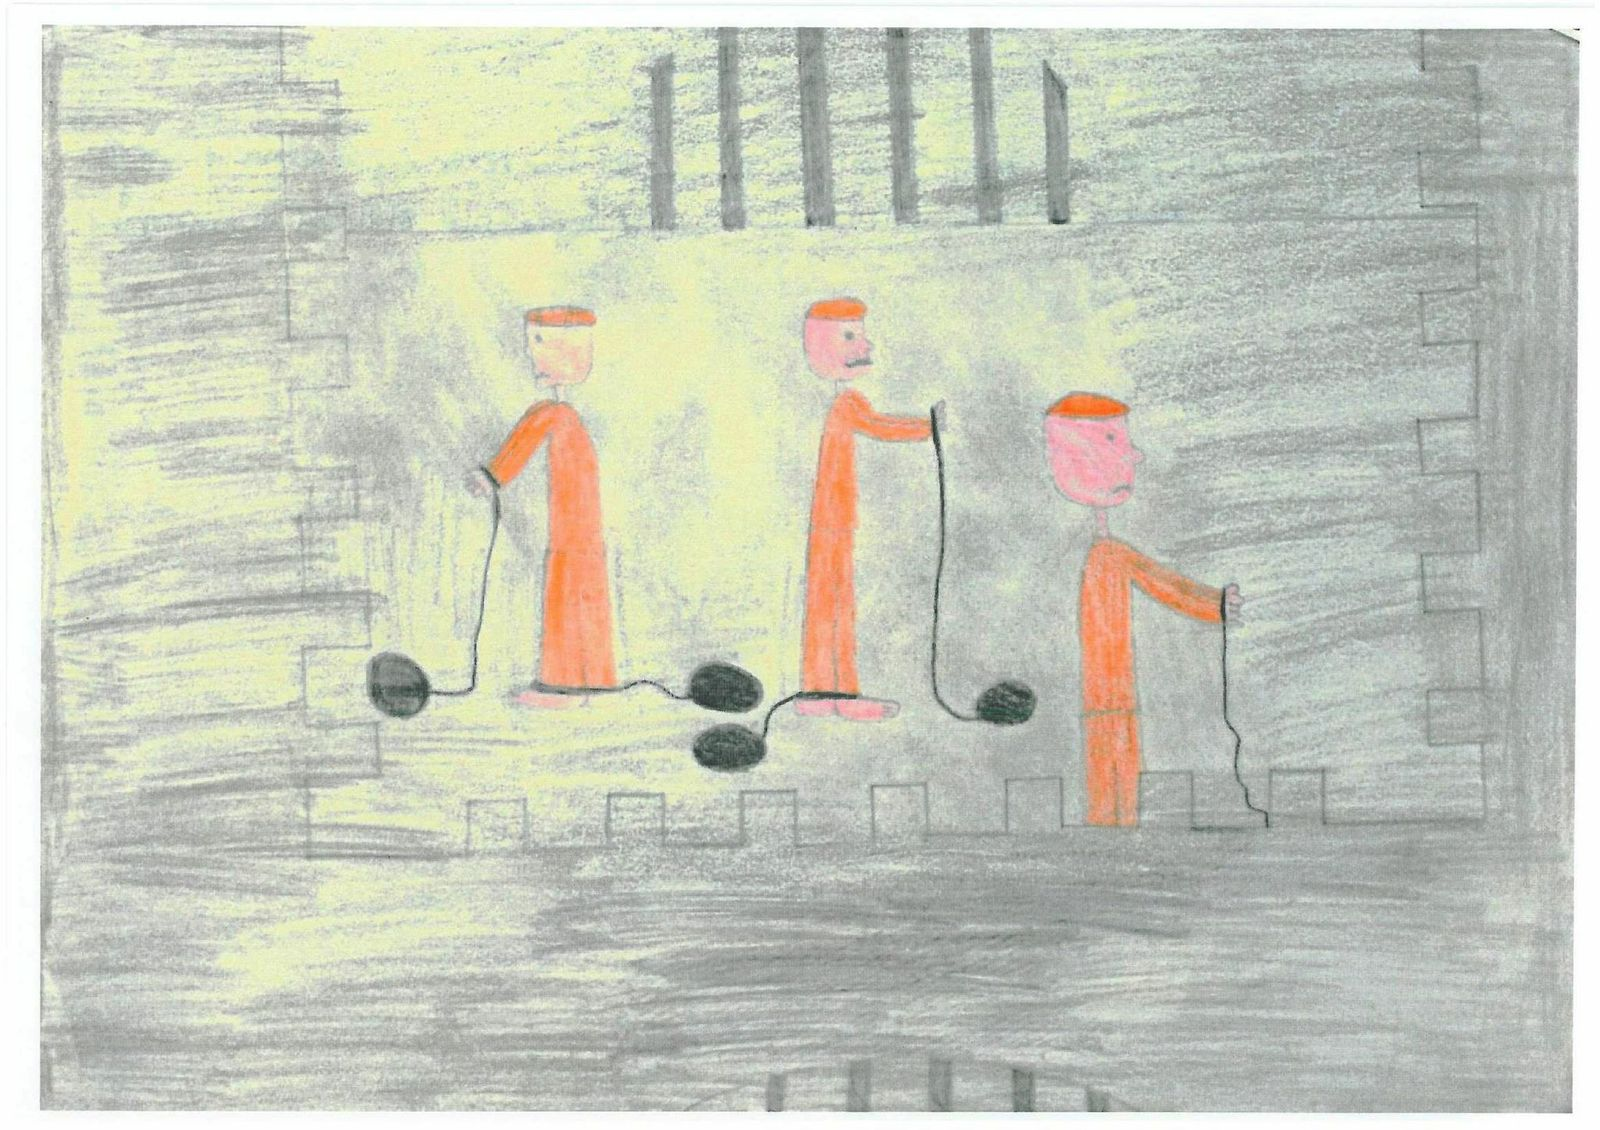 Child's drawing of inmates tied to balls and chains